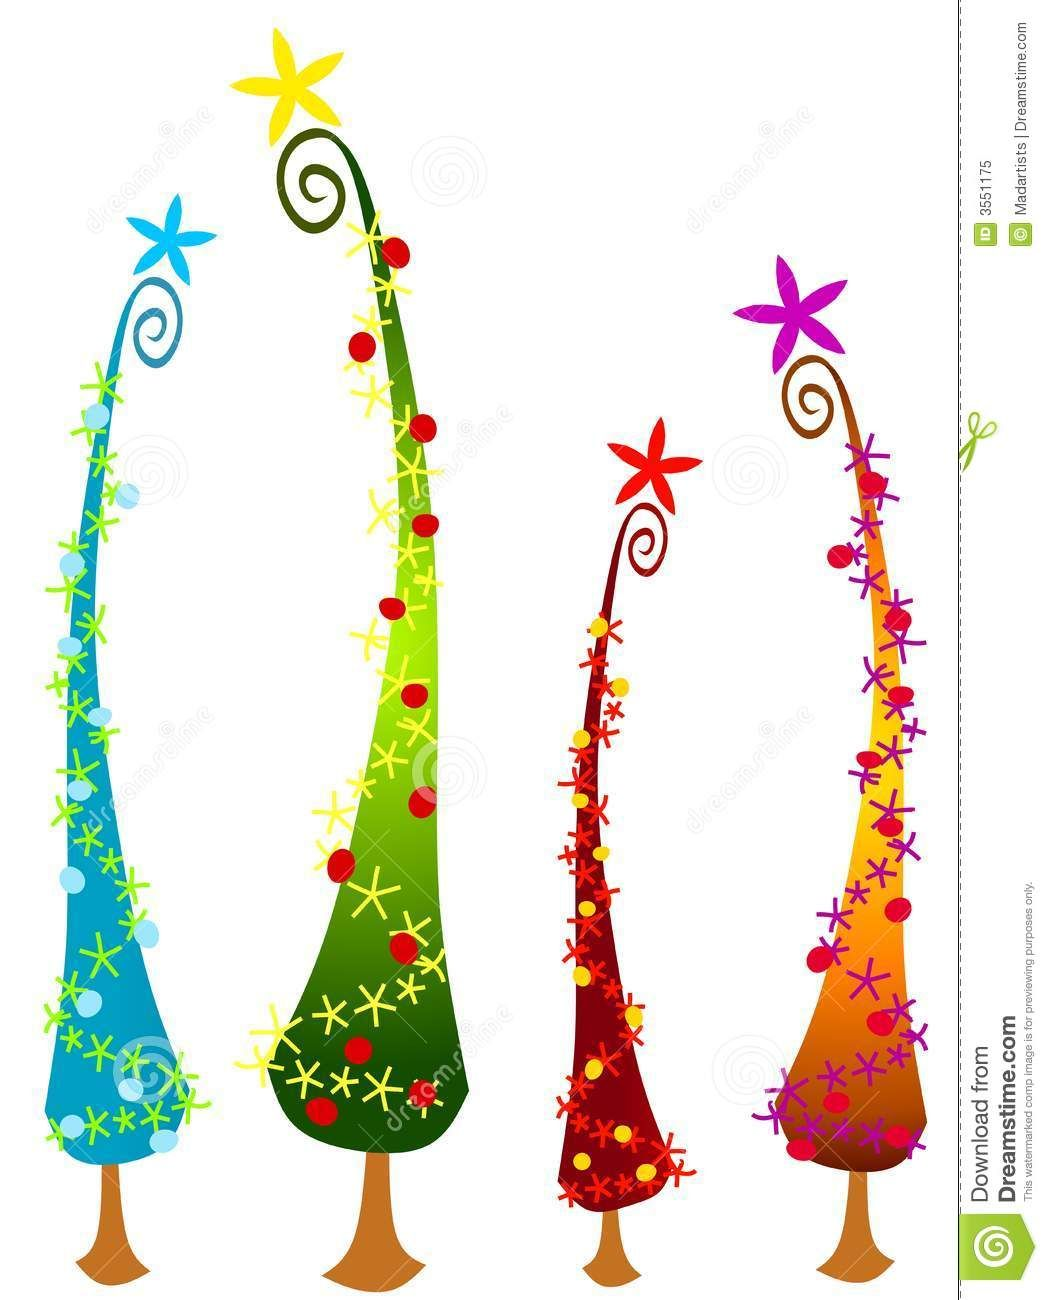 Tall christmas tree clipart clip royalty free stock An abstract clip art illustration of tall cartoonish ... clip royalty free stock